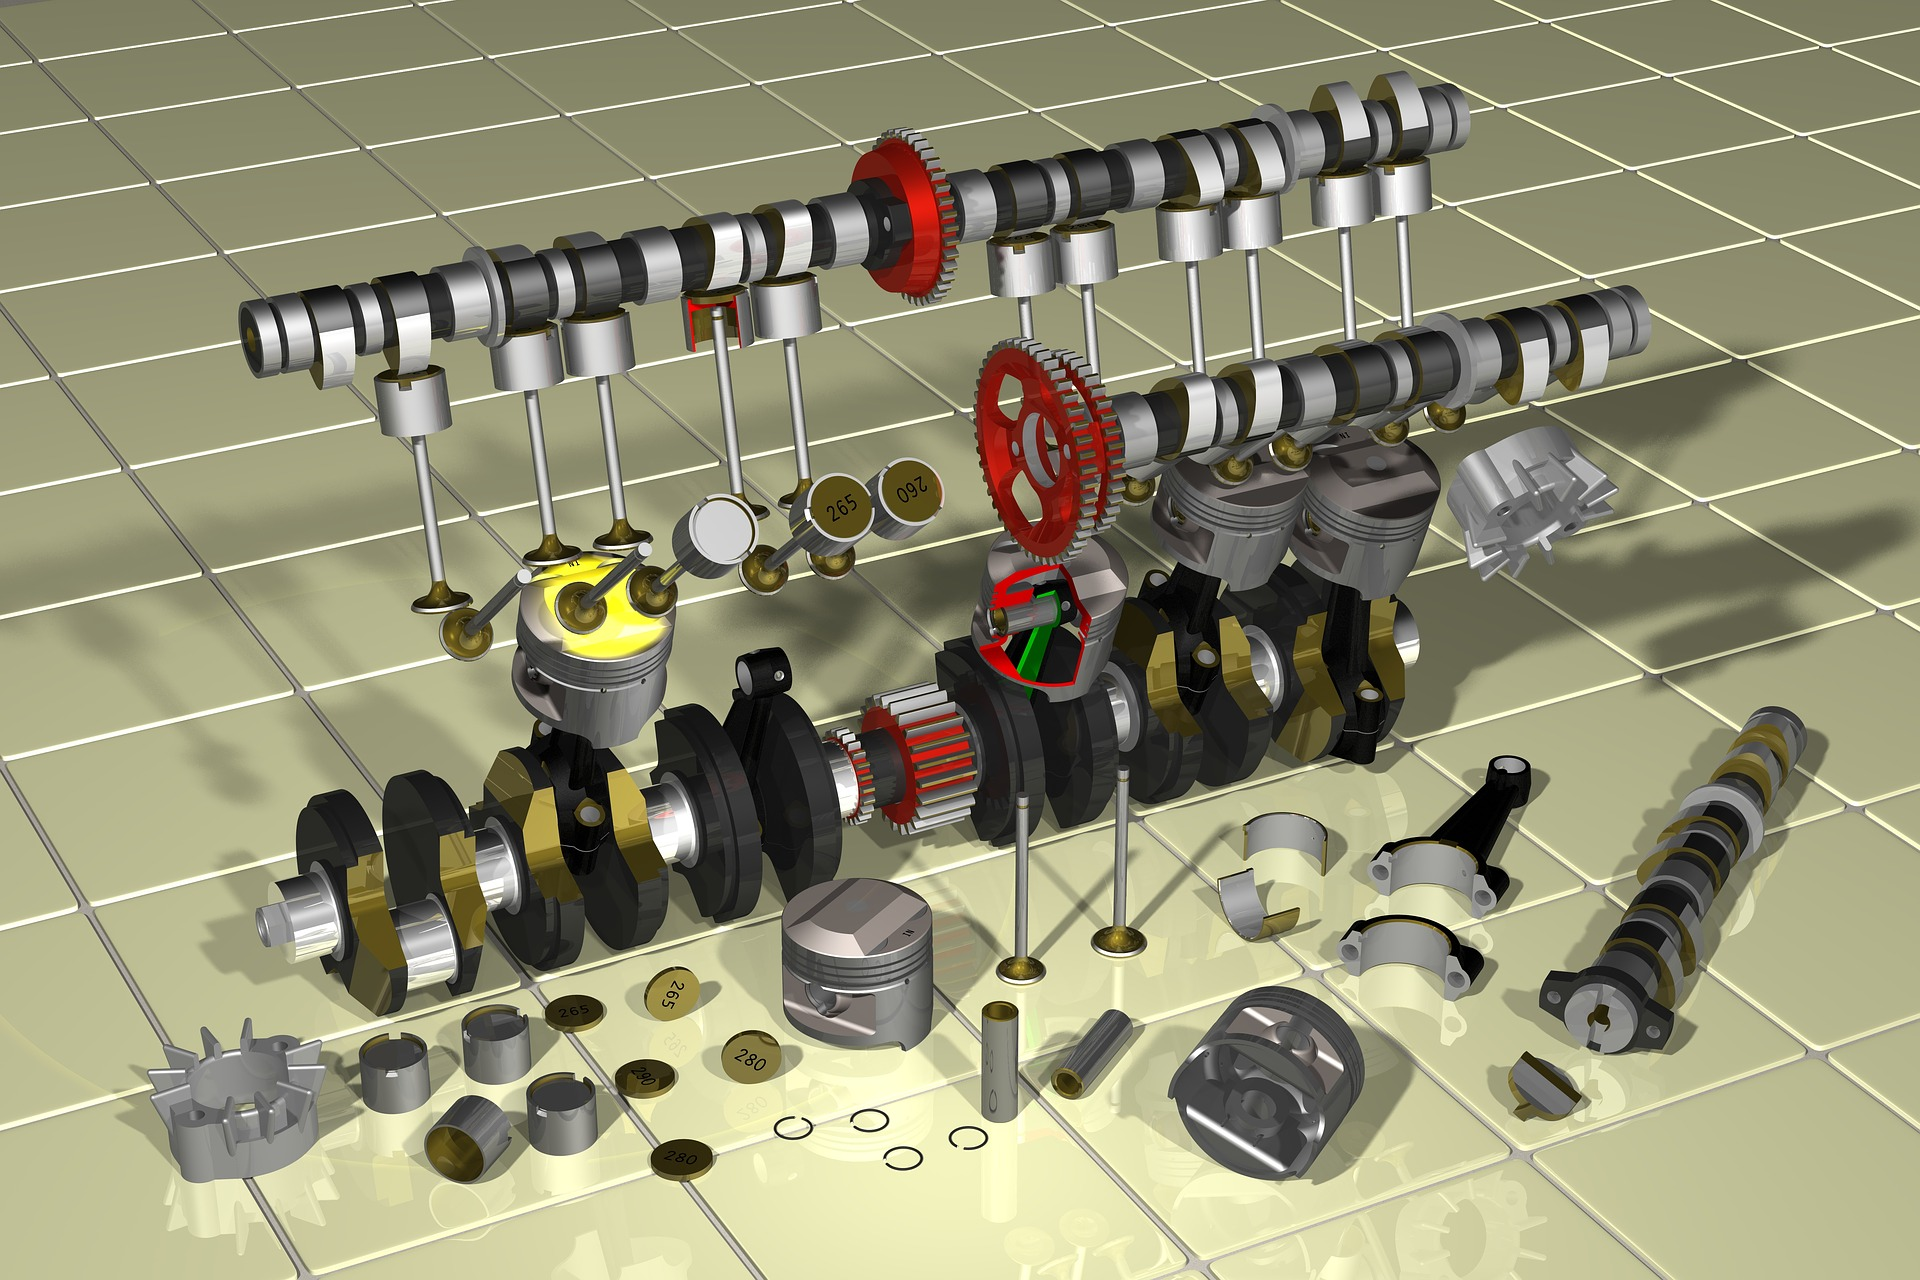 hight resolution of main parts of an engine